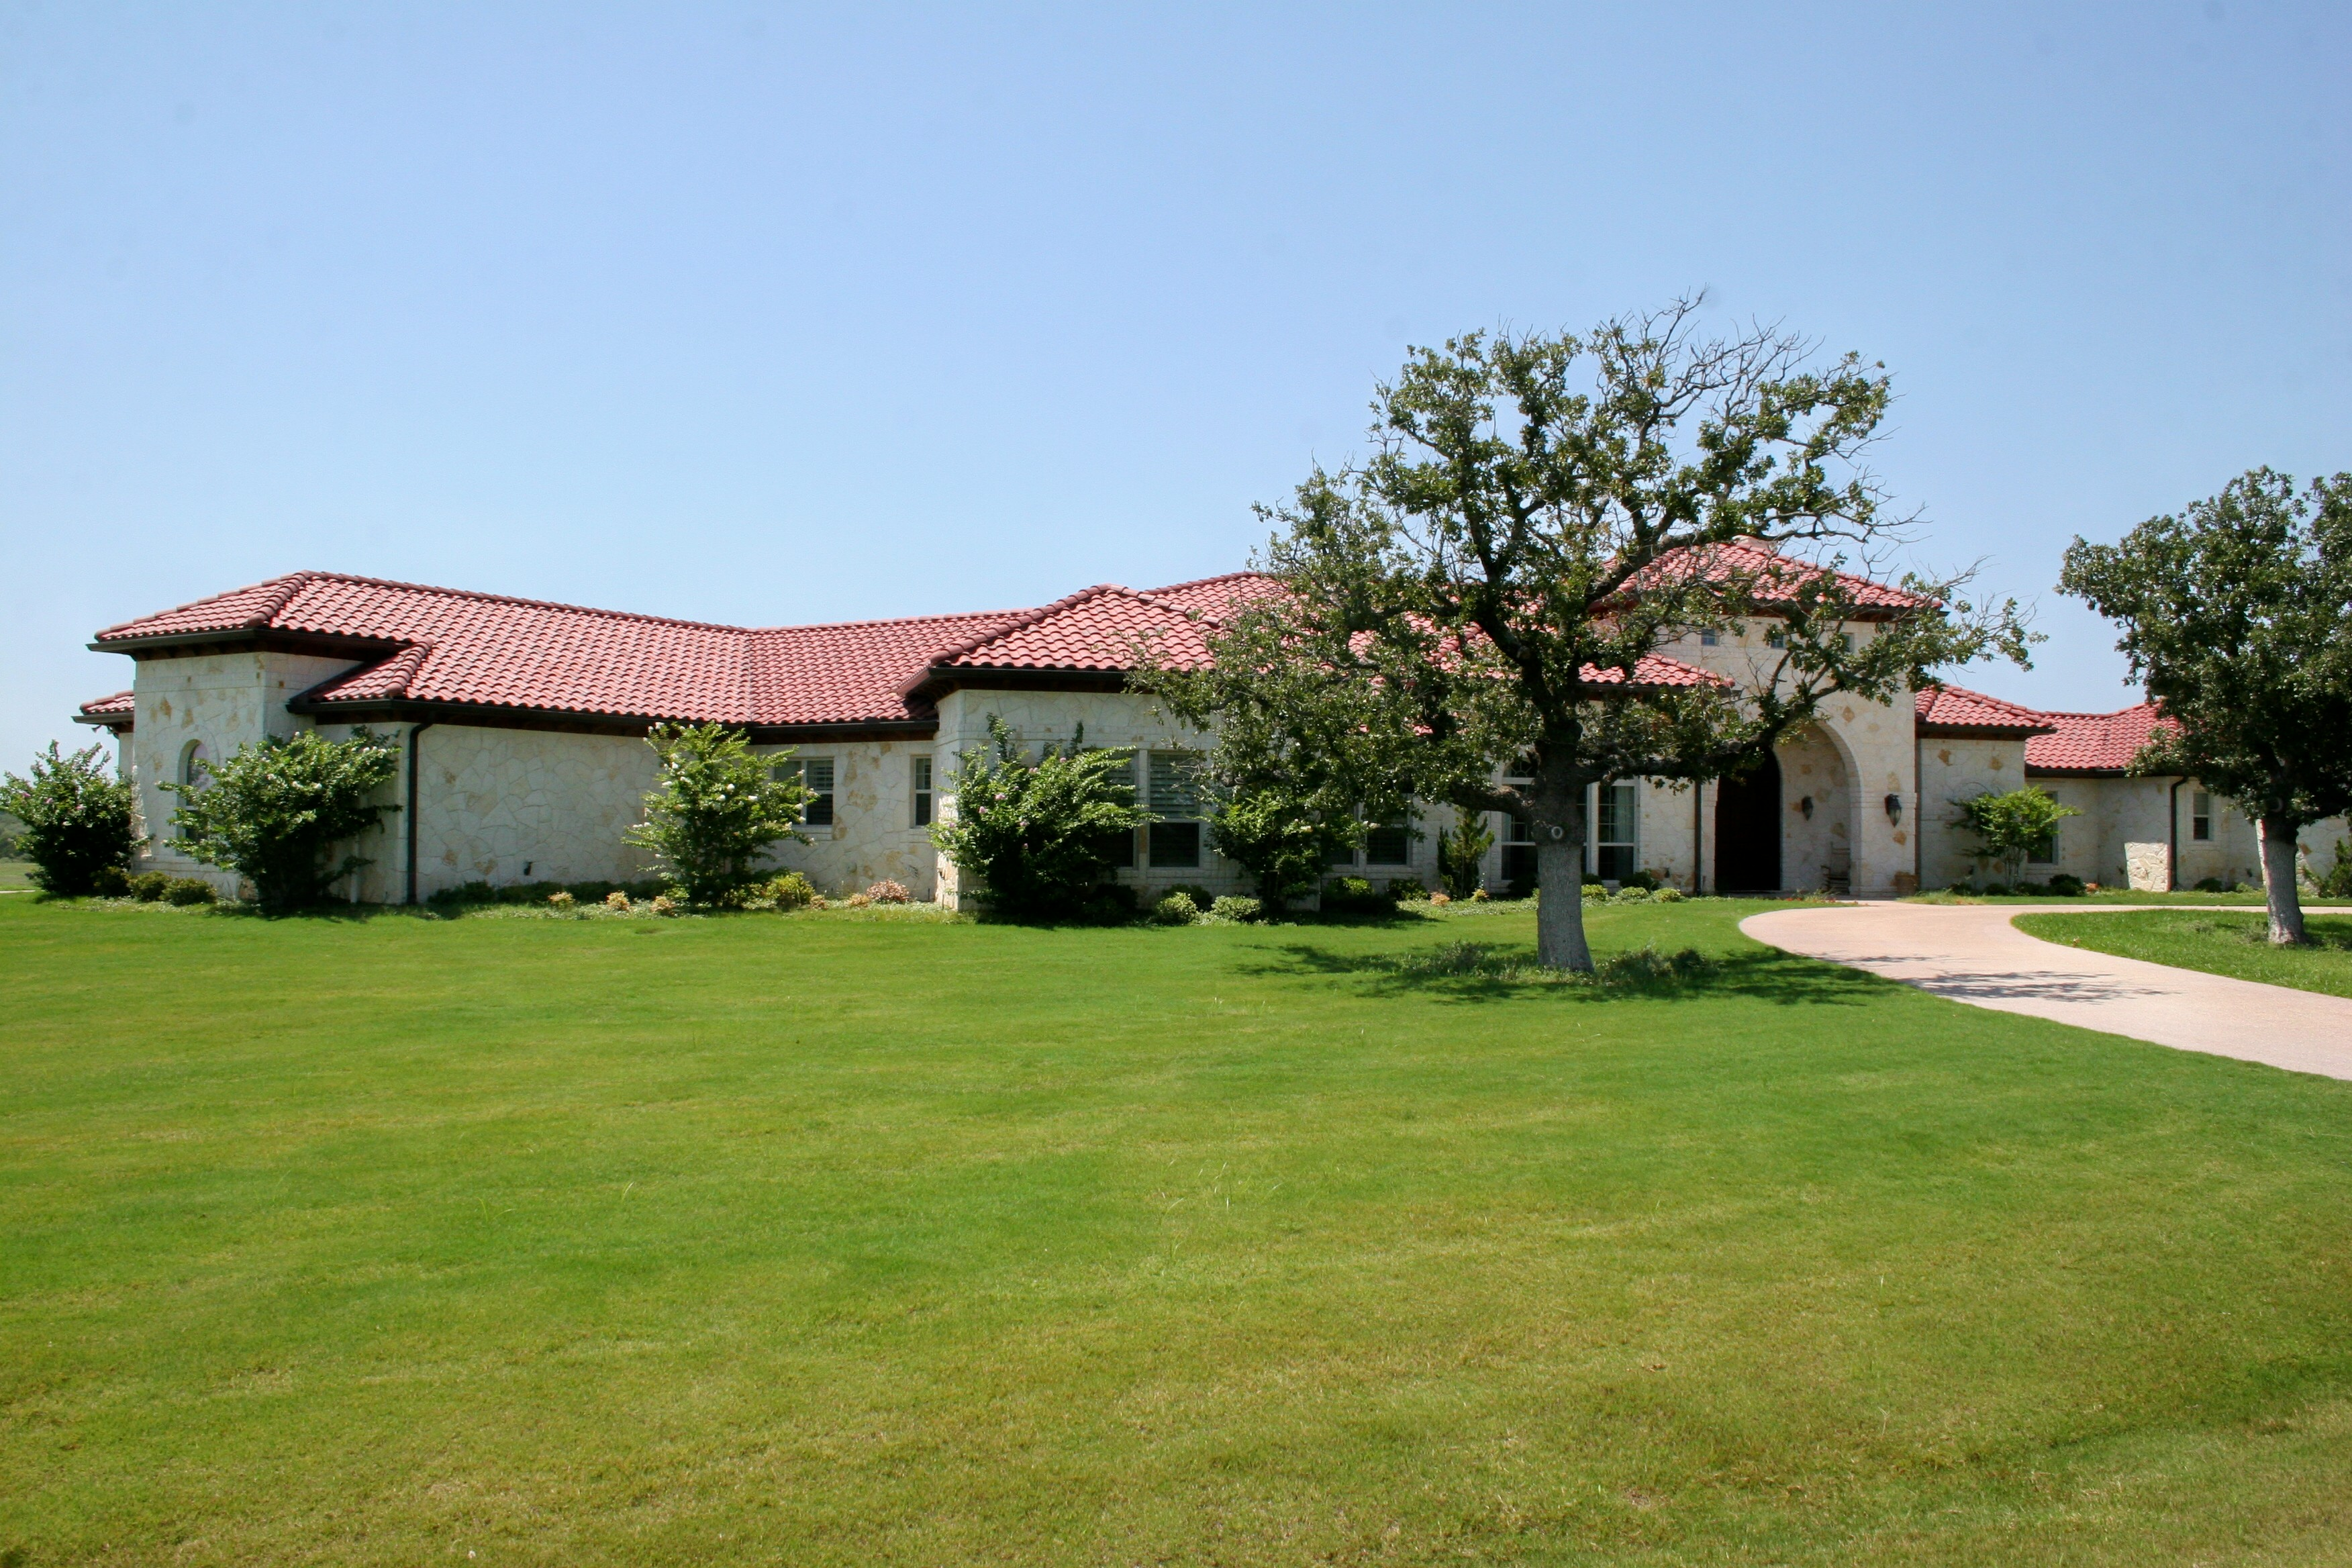 This Beautiful Terranean Style Home Was Built In Parker County Close To The Palo Pinto Line A Red Tile Roof And Austin Stone Give